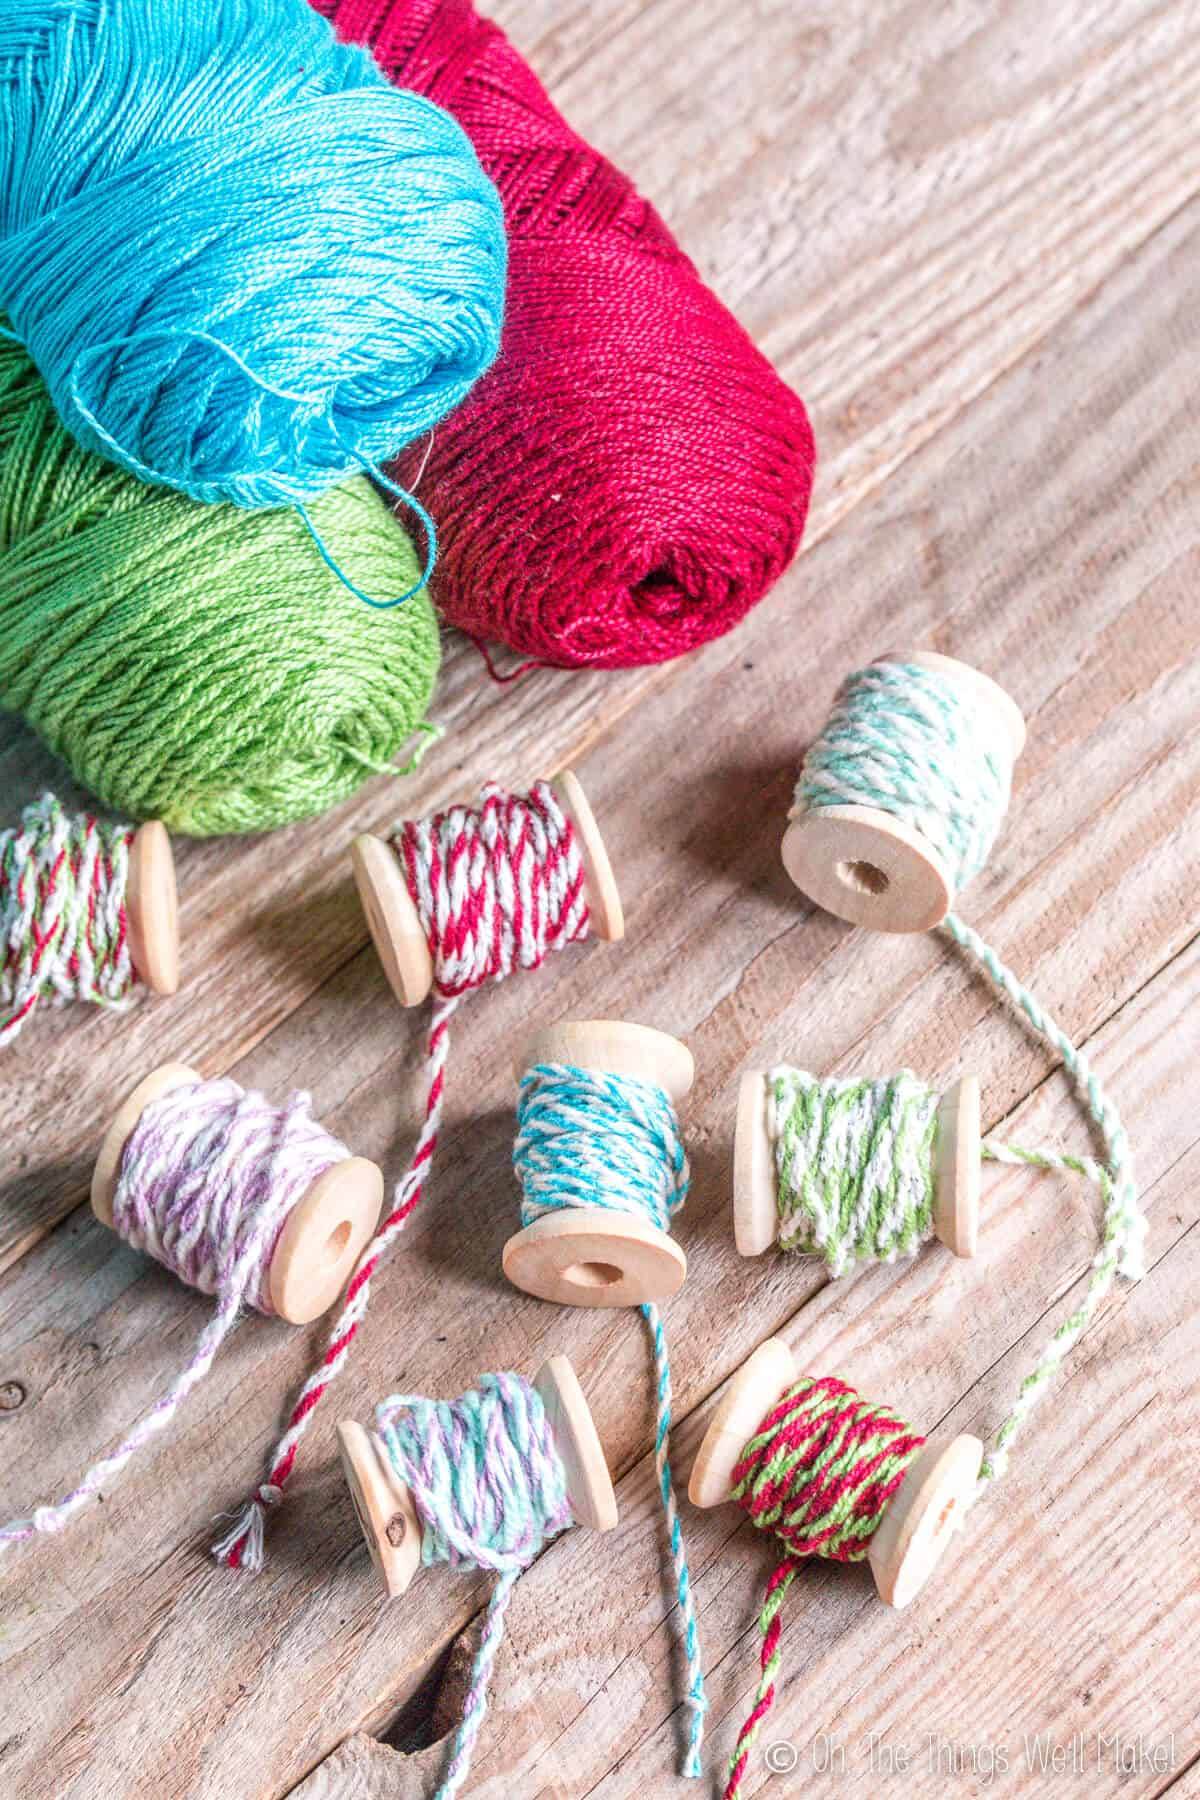 Make your own professional looking DIY bakers twine in custom colors quickly and easily using cotton thread or embroidery floss.